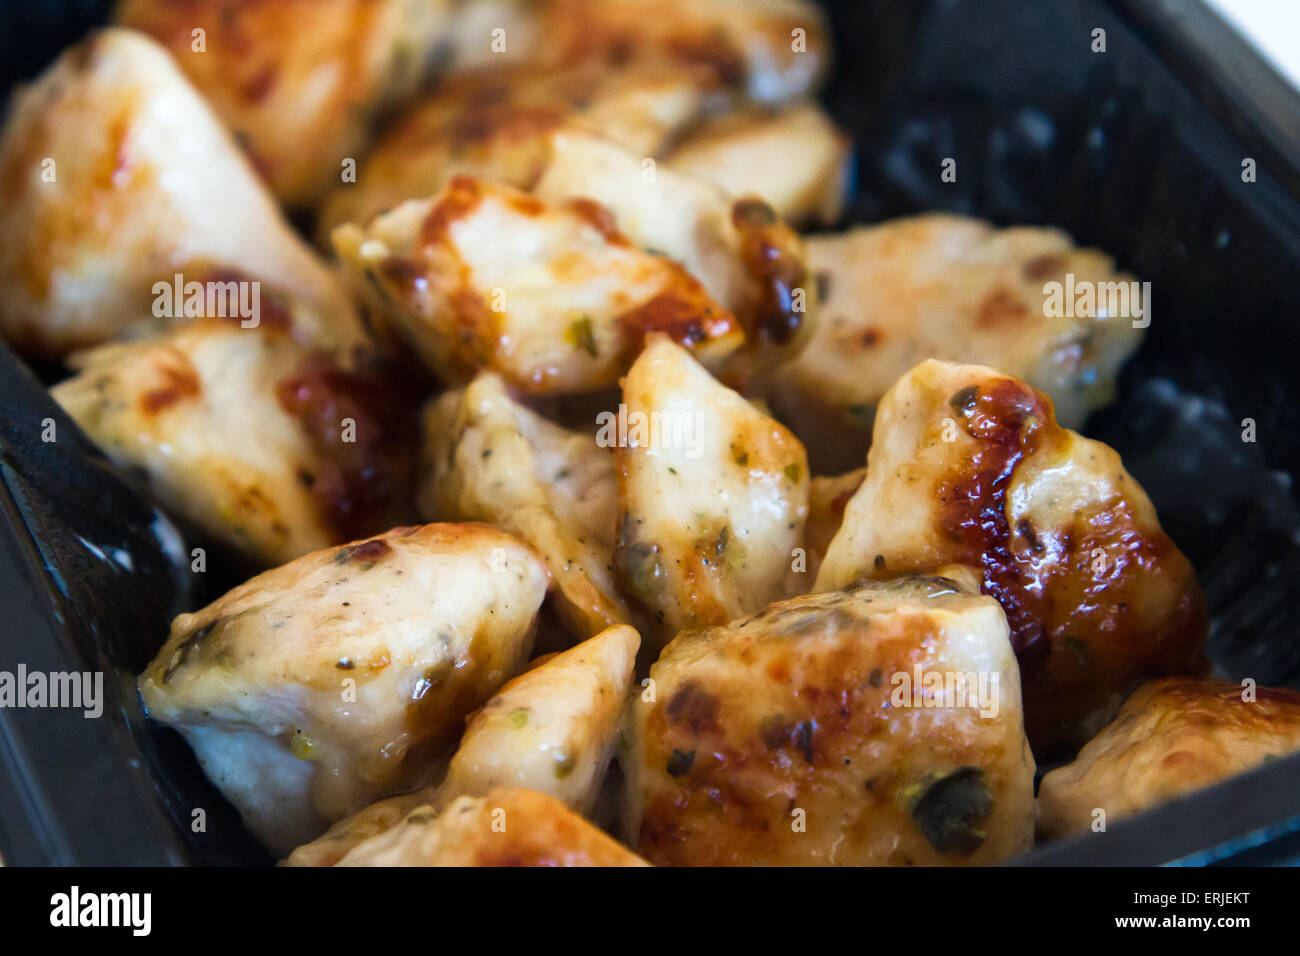 Fried chicken wings with sauce. - Stock Image